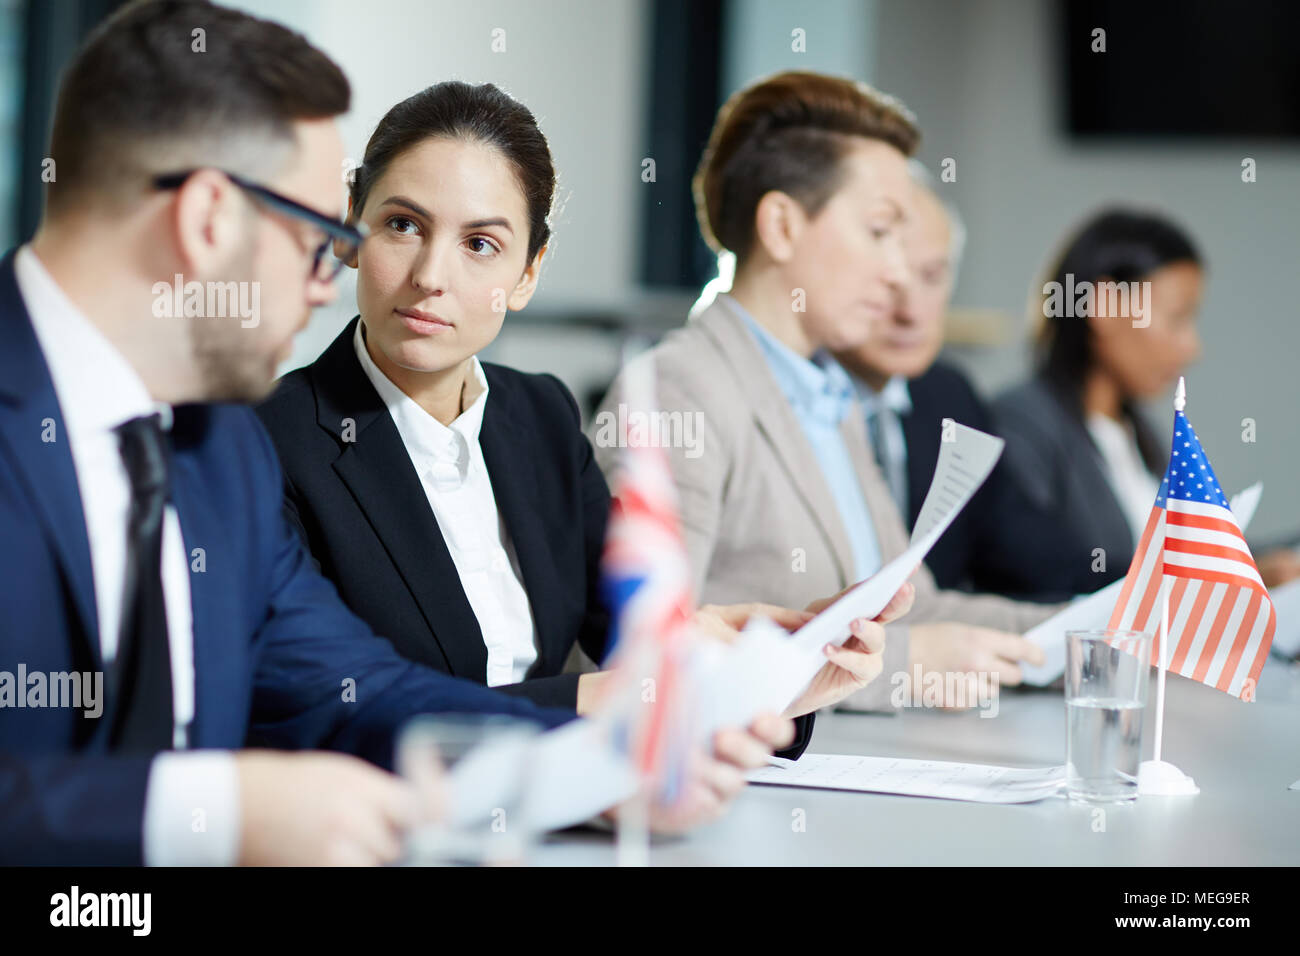 Foreign colleagues working - Stock Image